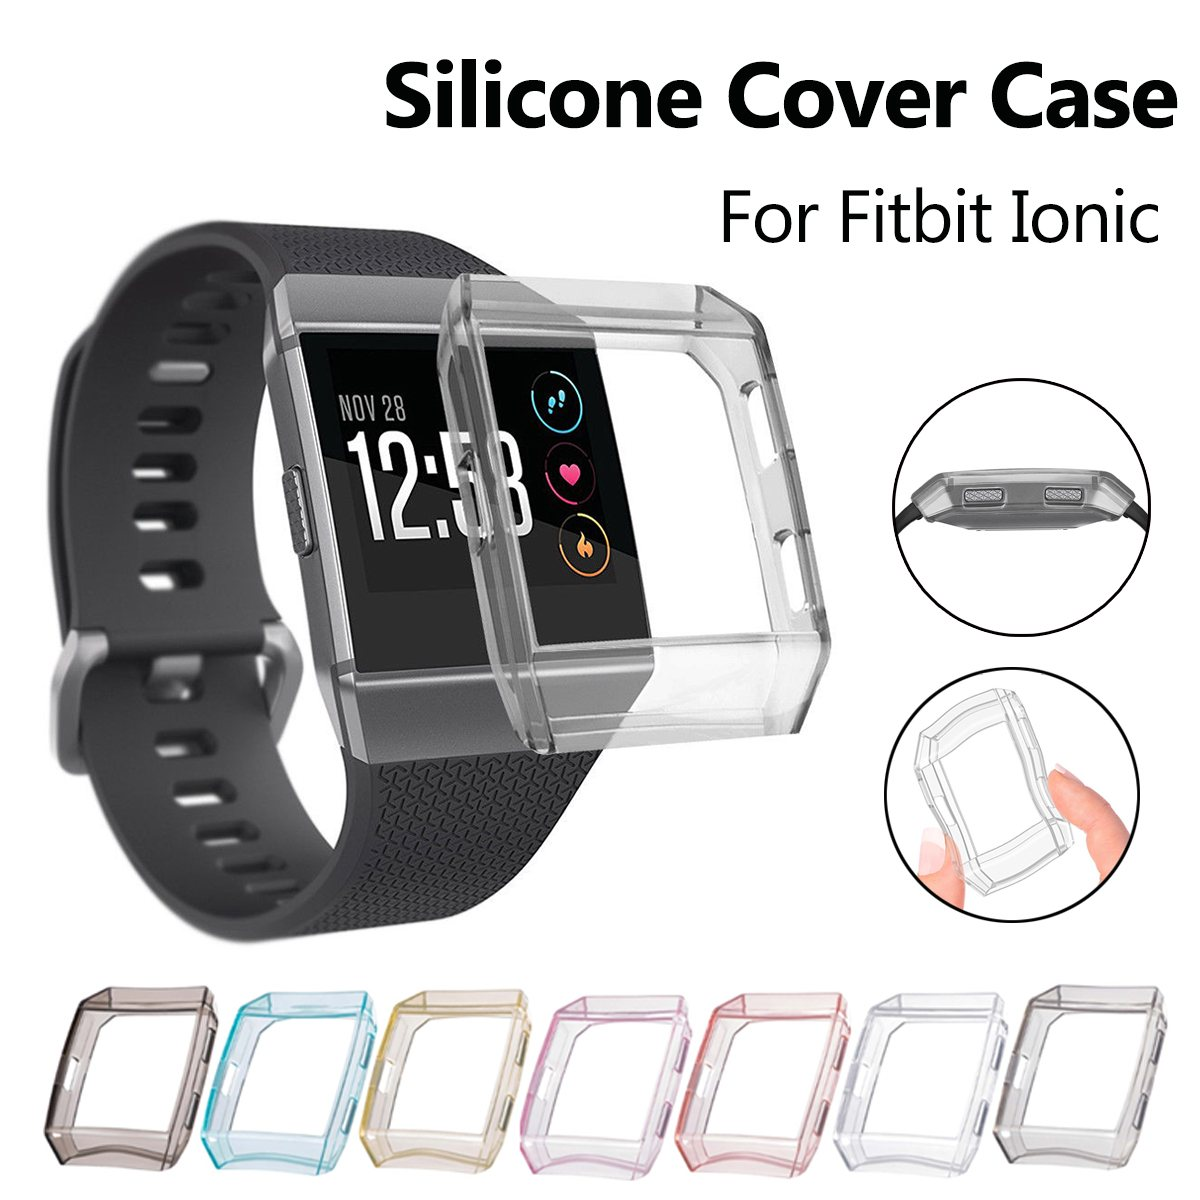 Multi Colors Silicone Frame Skin Cover Case Protective Guard Shell For Fitbit Ionic Smart Watch Band Screen Protector 100pcs a lot wholesale silicone case skin shell protective cover for wii for u gamepad protector full body